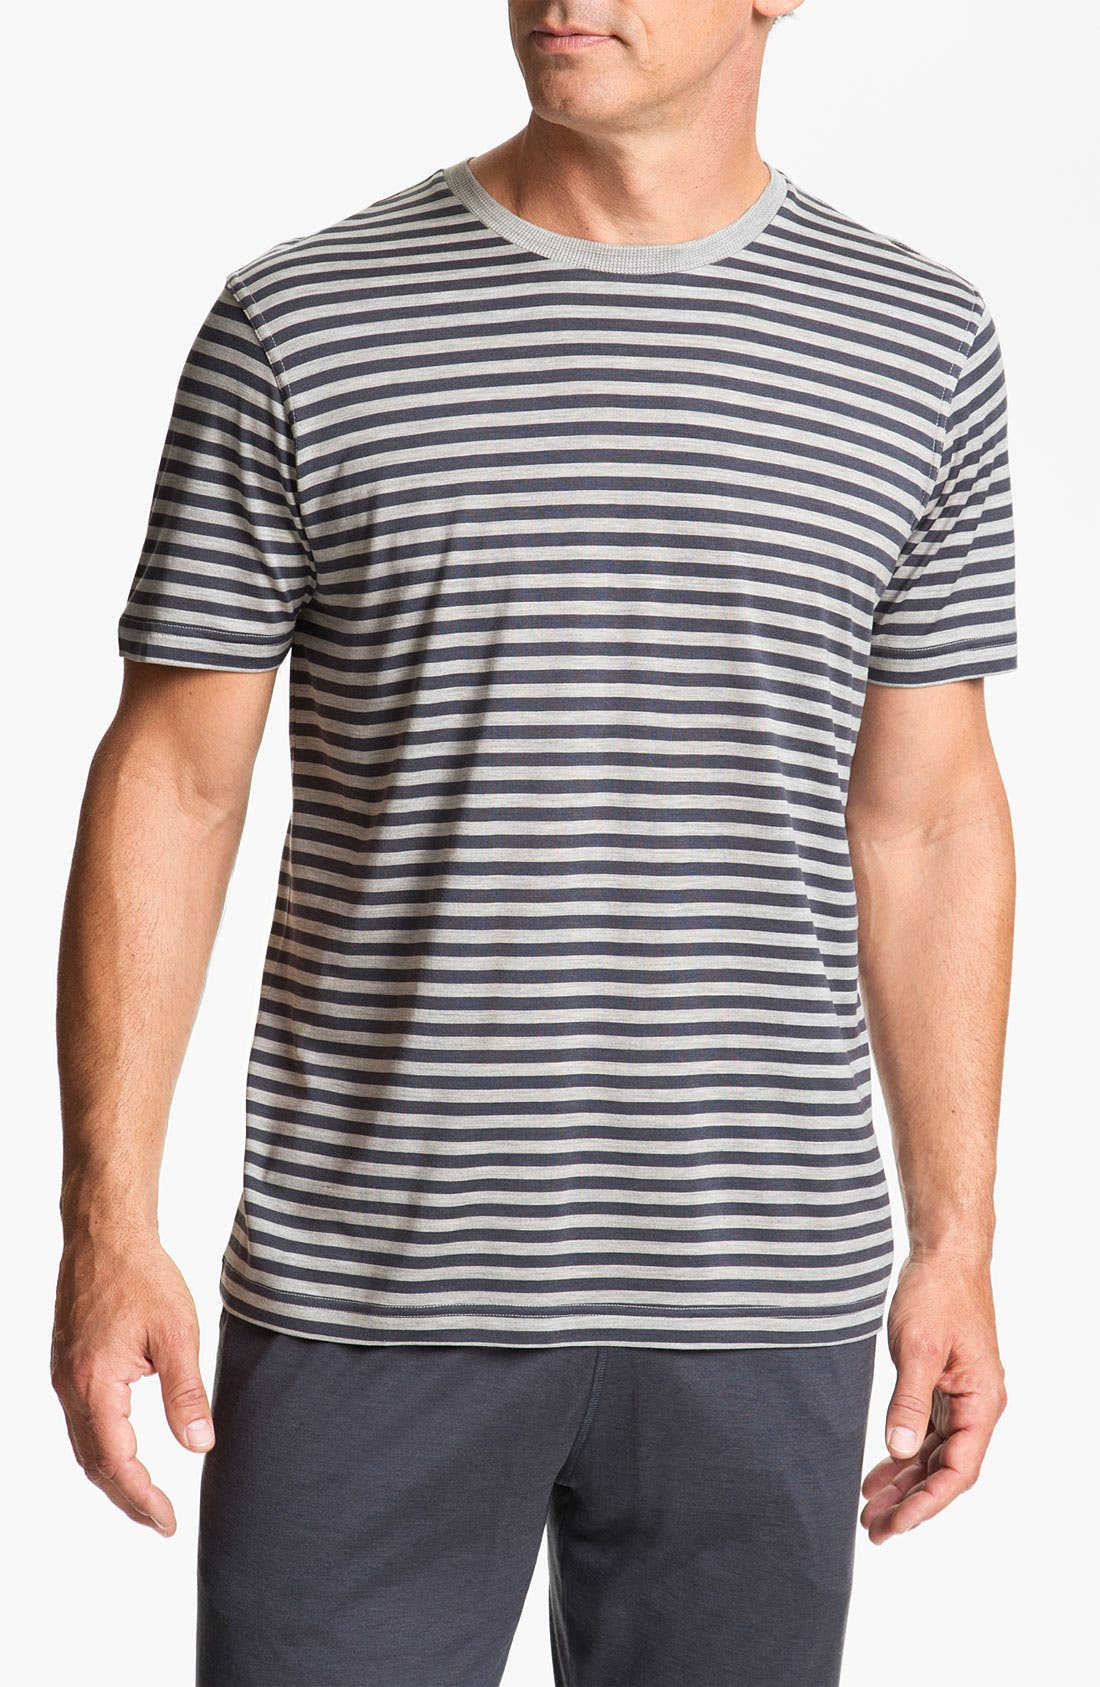 Alternate Image 1 Selected - Daniel Buchler Silk Blend Heathered Stripe T-Shirt